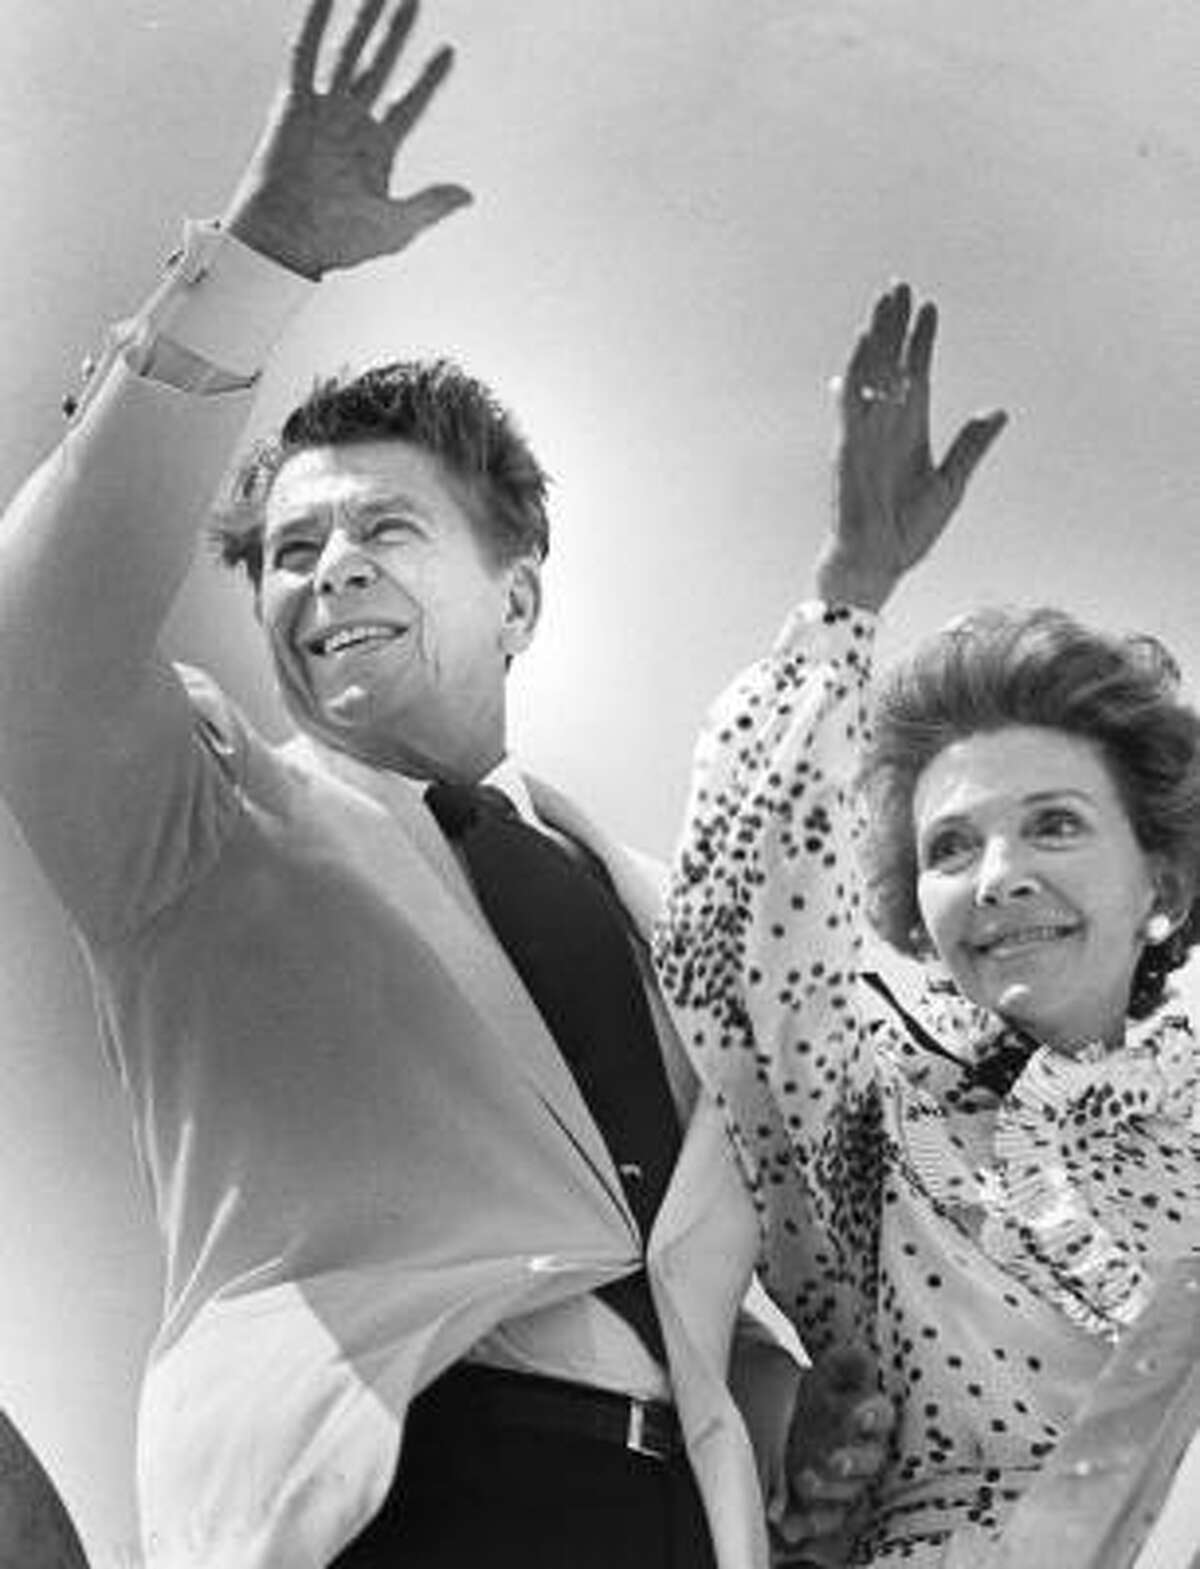 Ronald Reagan and his wife, Nancy, depart Hobby Airport after a campaign stop in July 1980, the year he was elected president.